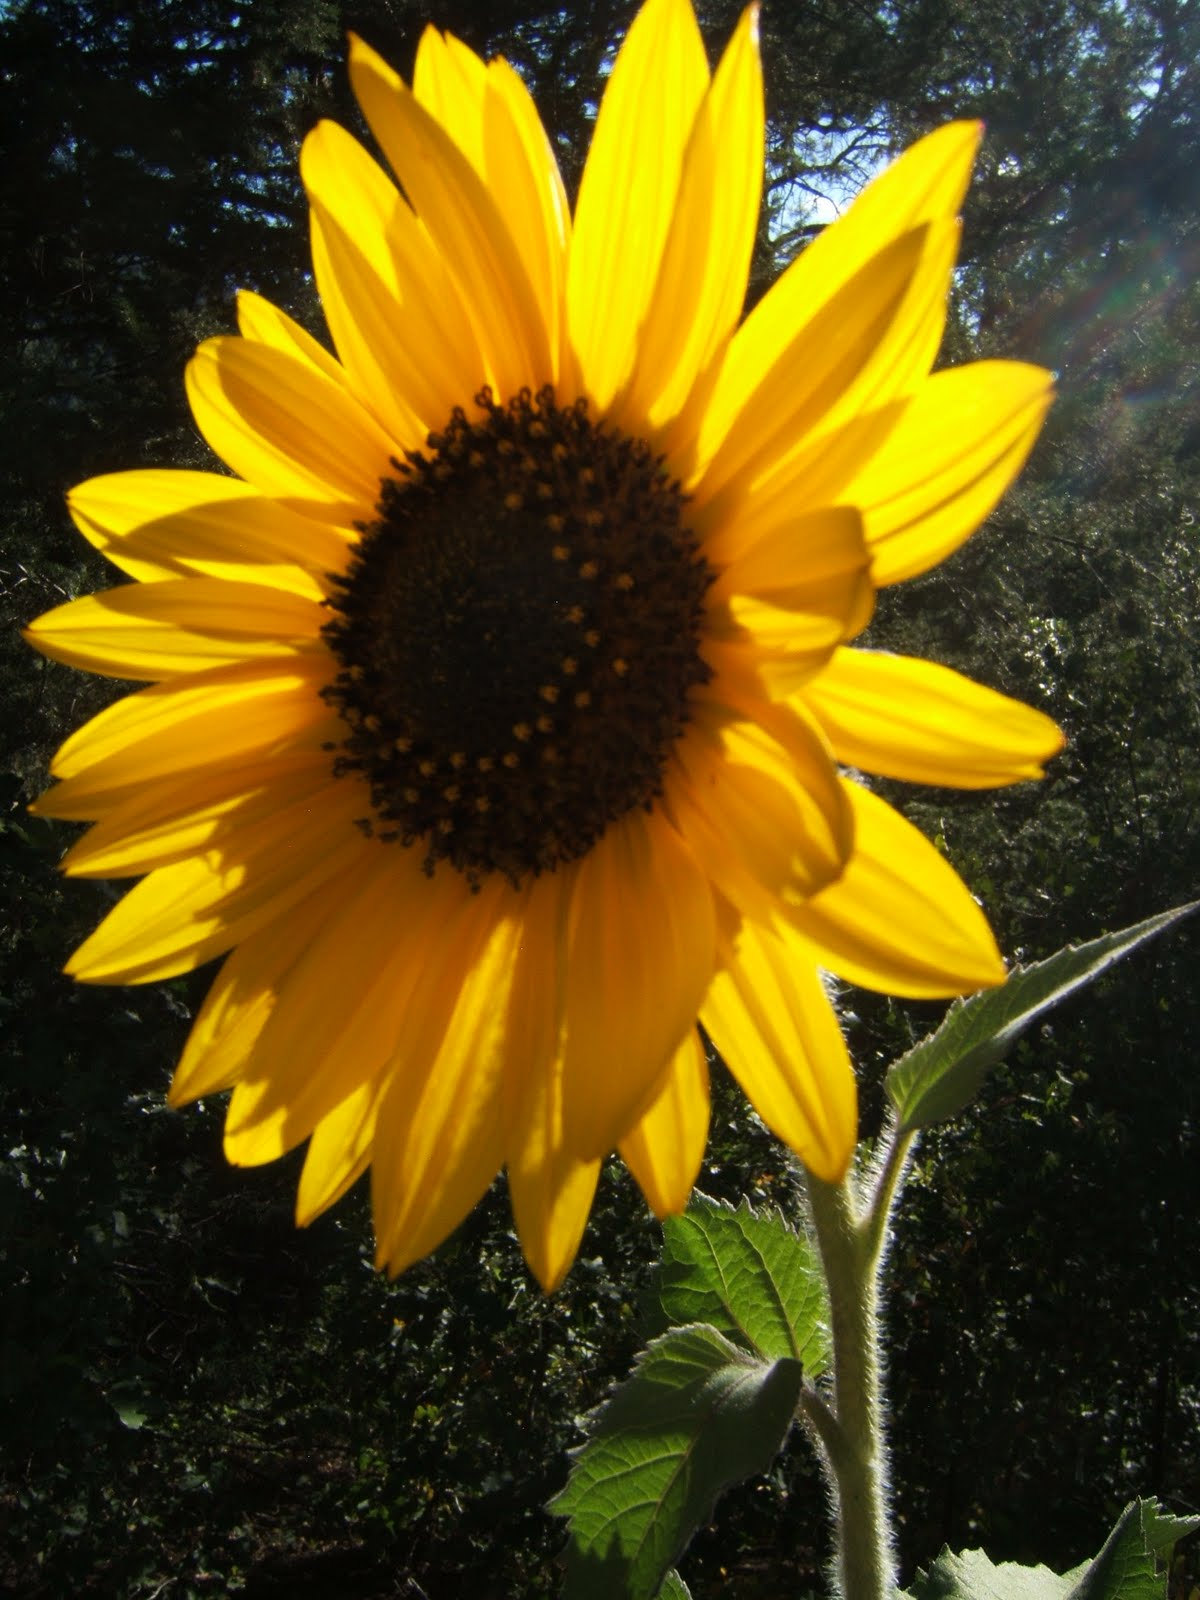 Sunflower, late bloomer.